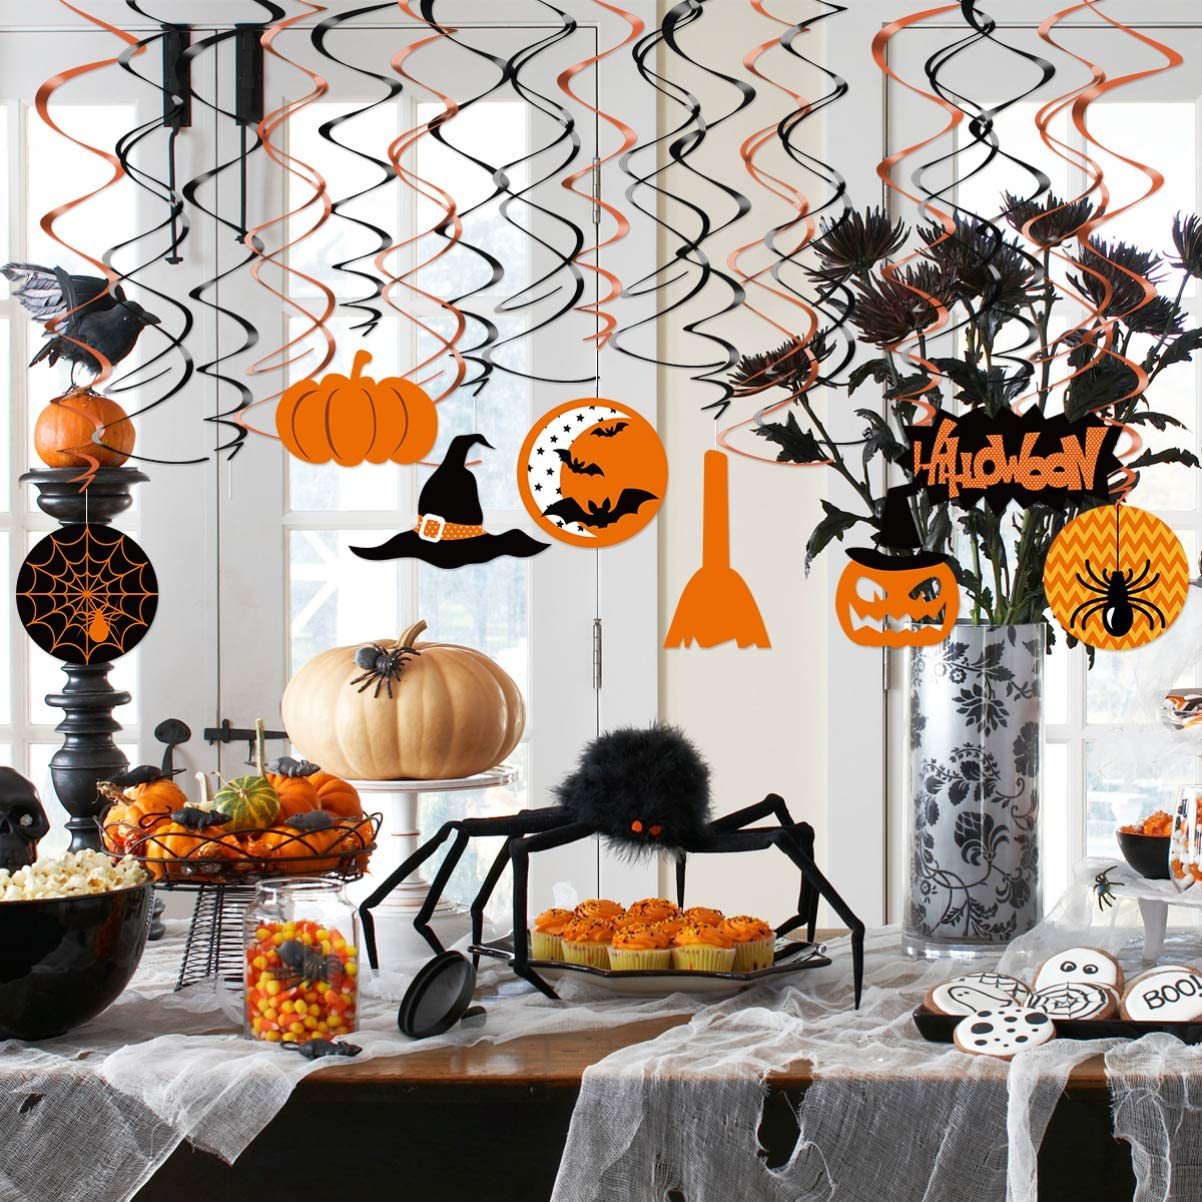 Halloween Swirl Hanging Dizzy Dangler Foil Hanging Decoration for Halloween Party Supplies